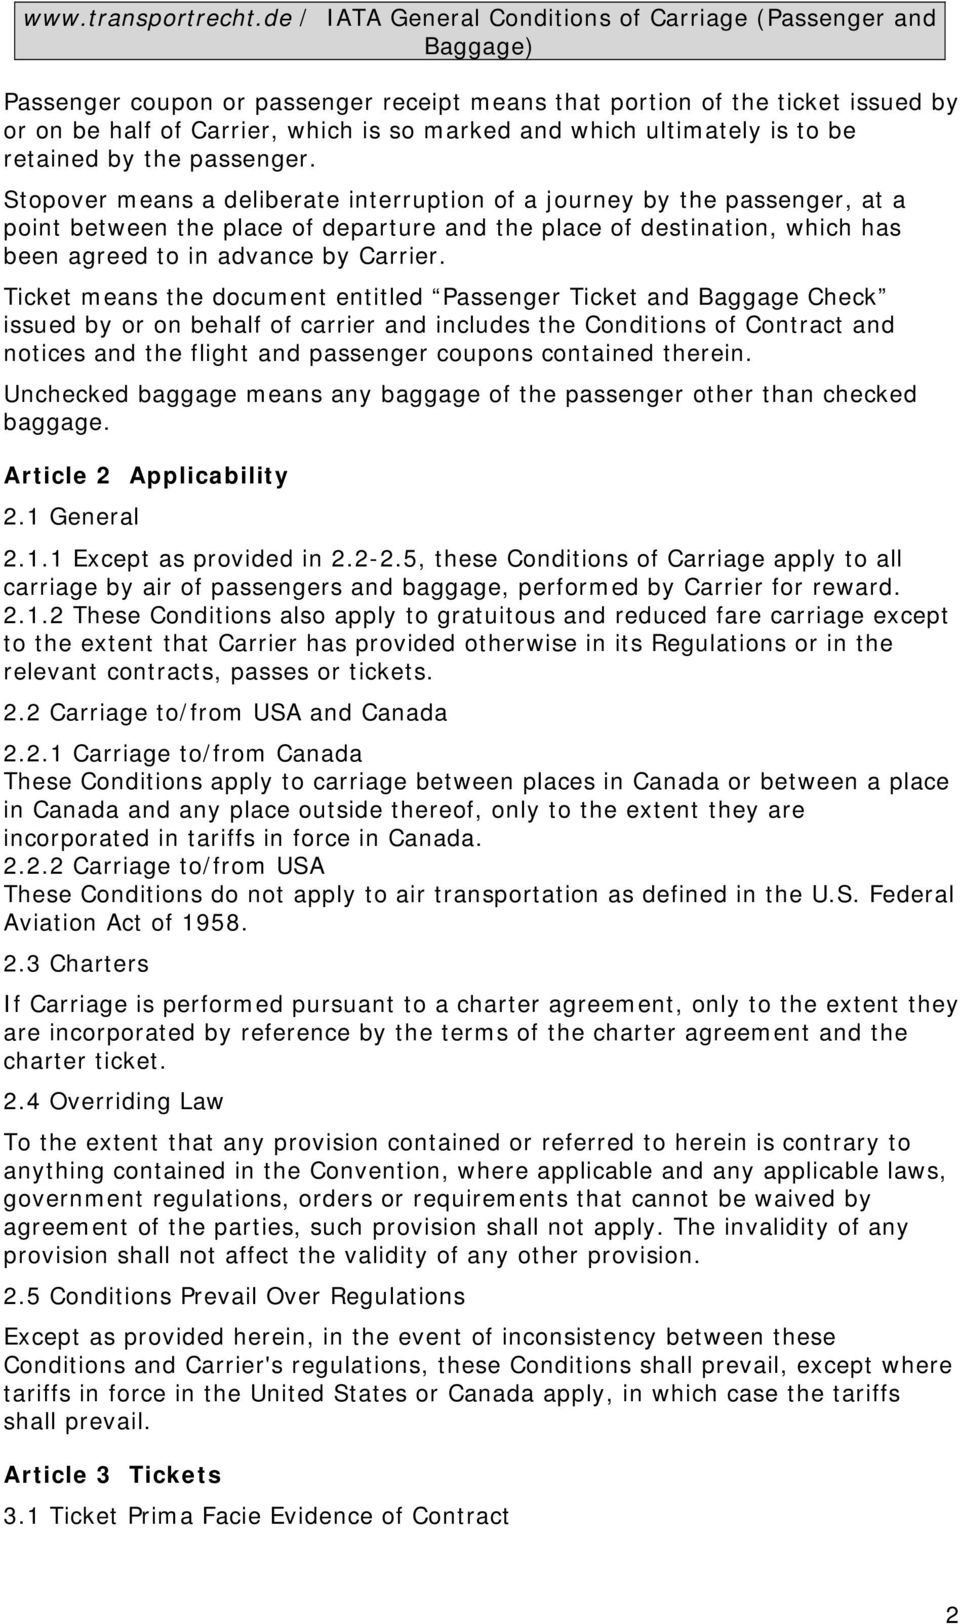 Ticket means the document entitled Passenger Ticket and Baggage Check issued by or on behalf of carrier and includes the Conditions of Contract and notices and the flight and passenger coupons